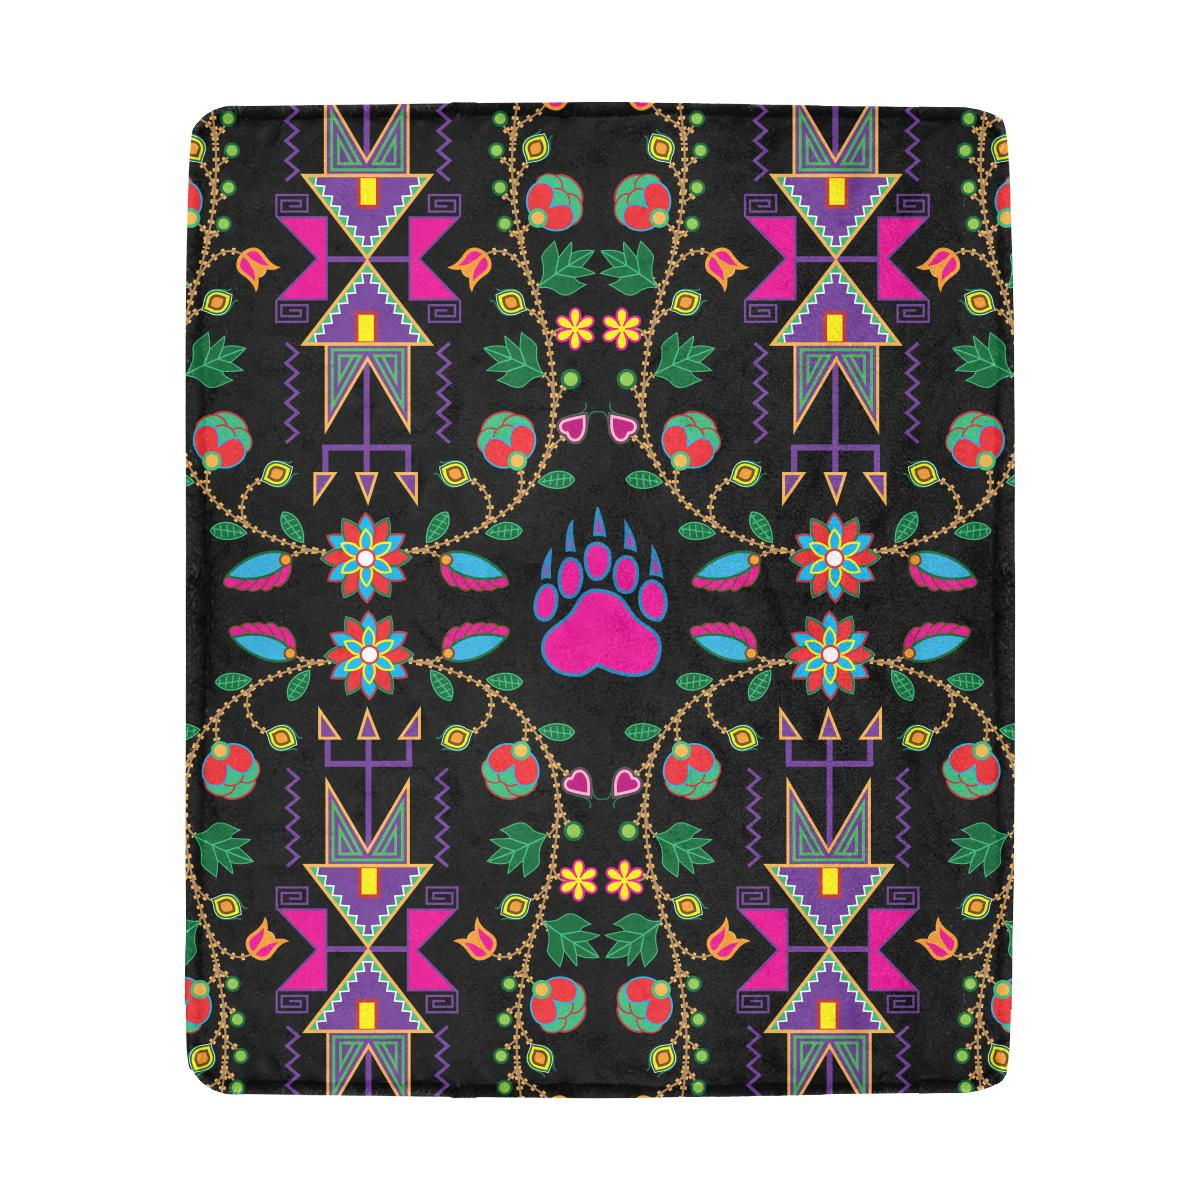 Geometric Floral Fall - Black Ultra-Soft Micro Fleece Blanket 50